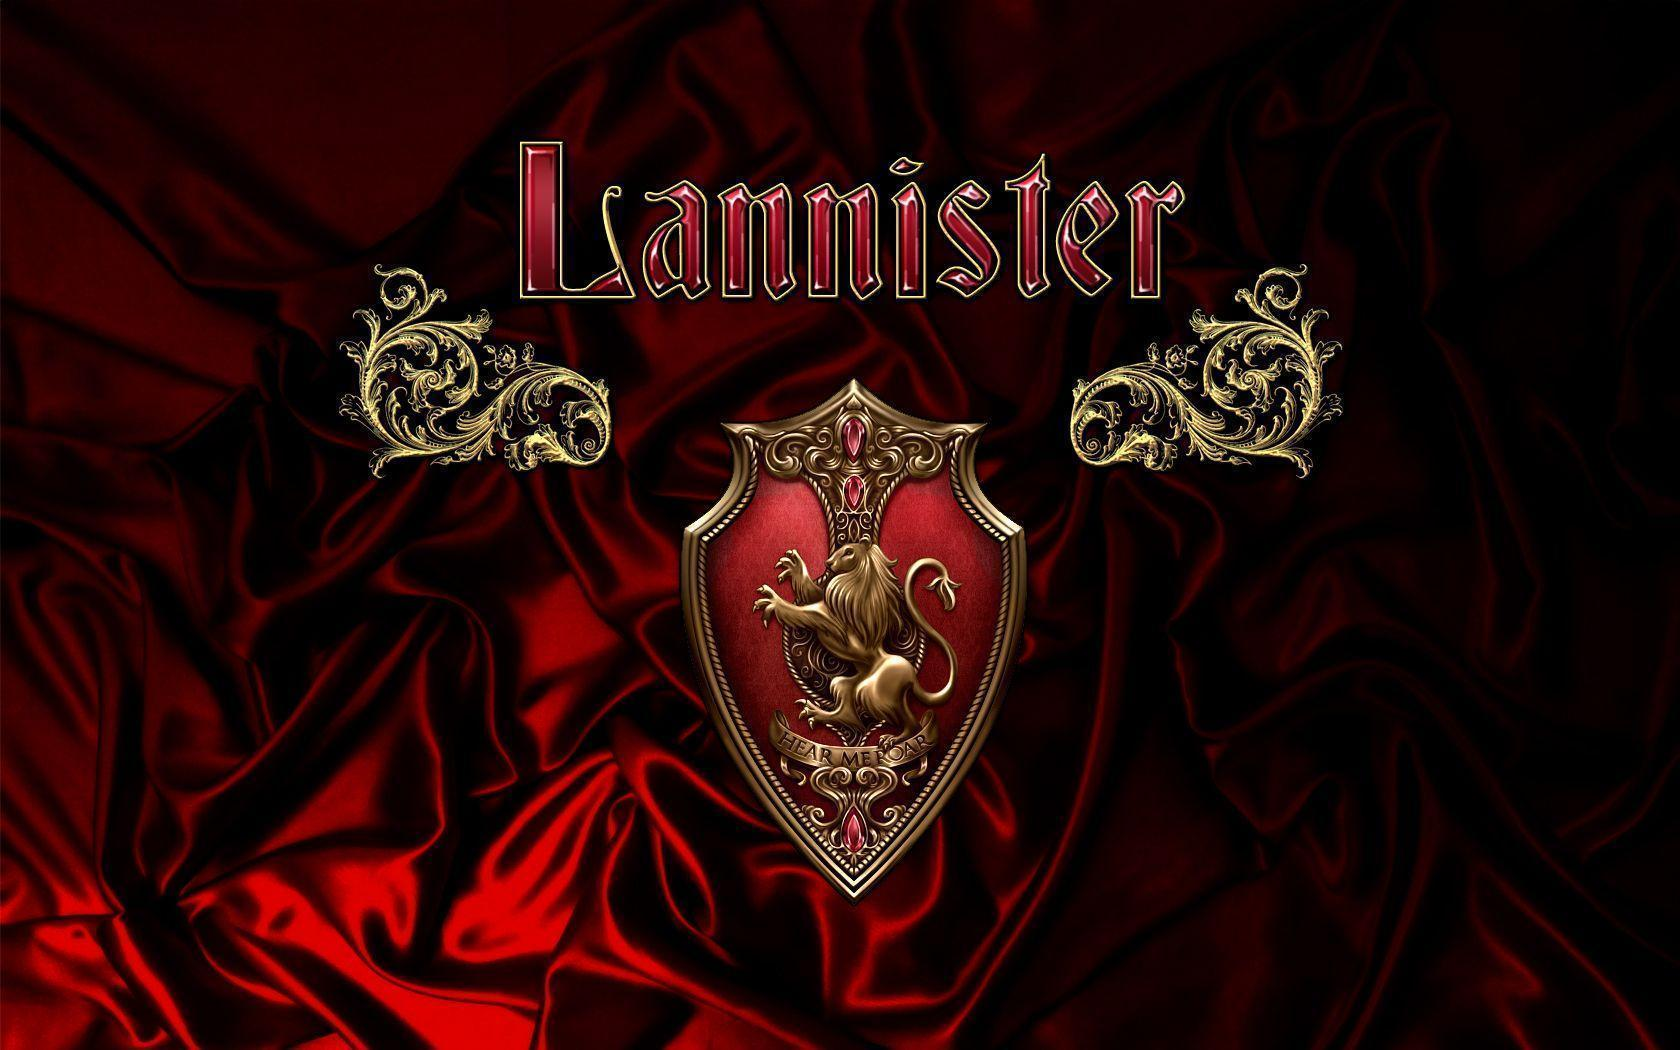 house of lannister House lannister was a powerful & feared house due to the ongoing efforts of one person, tywin lannister the downfall of house lannister can be credited to tywin's only daughter, cersei lannister baratheon.